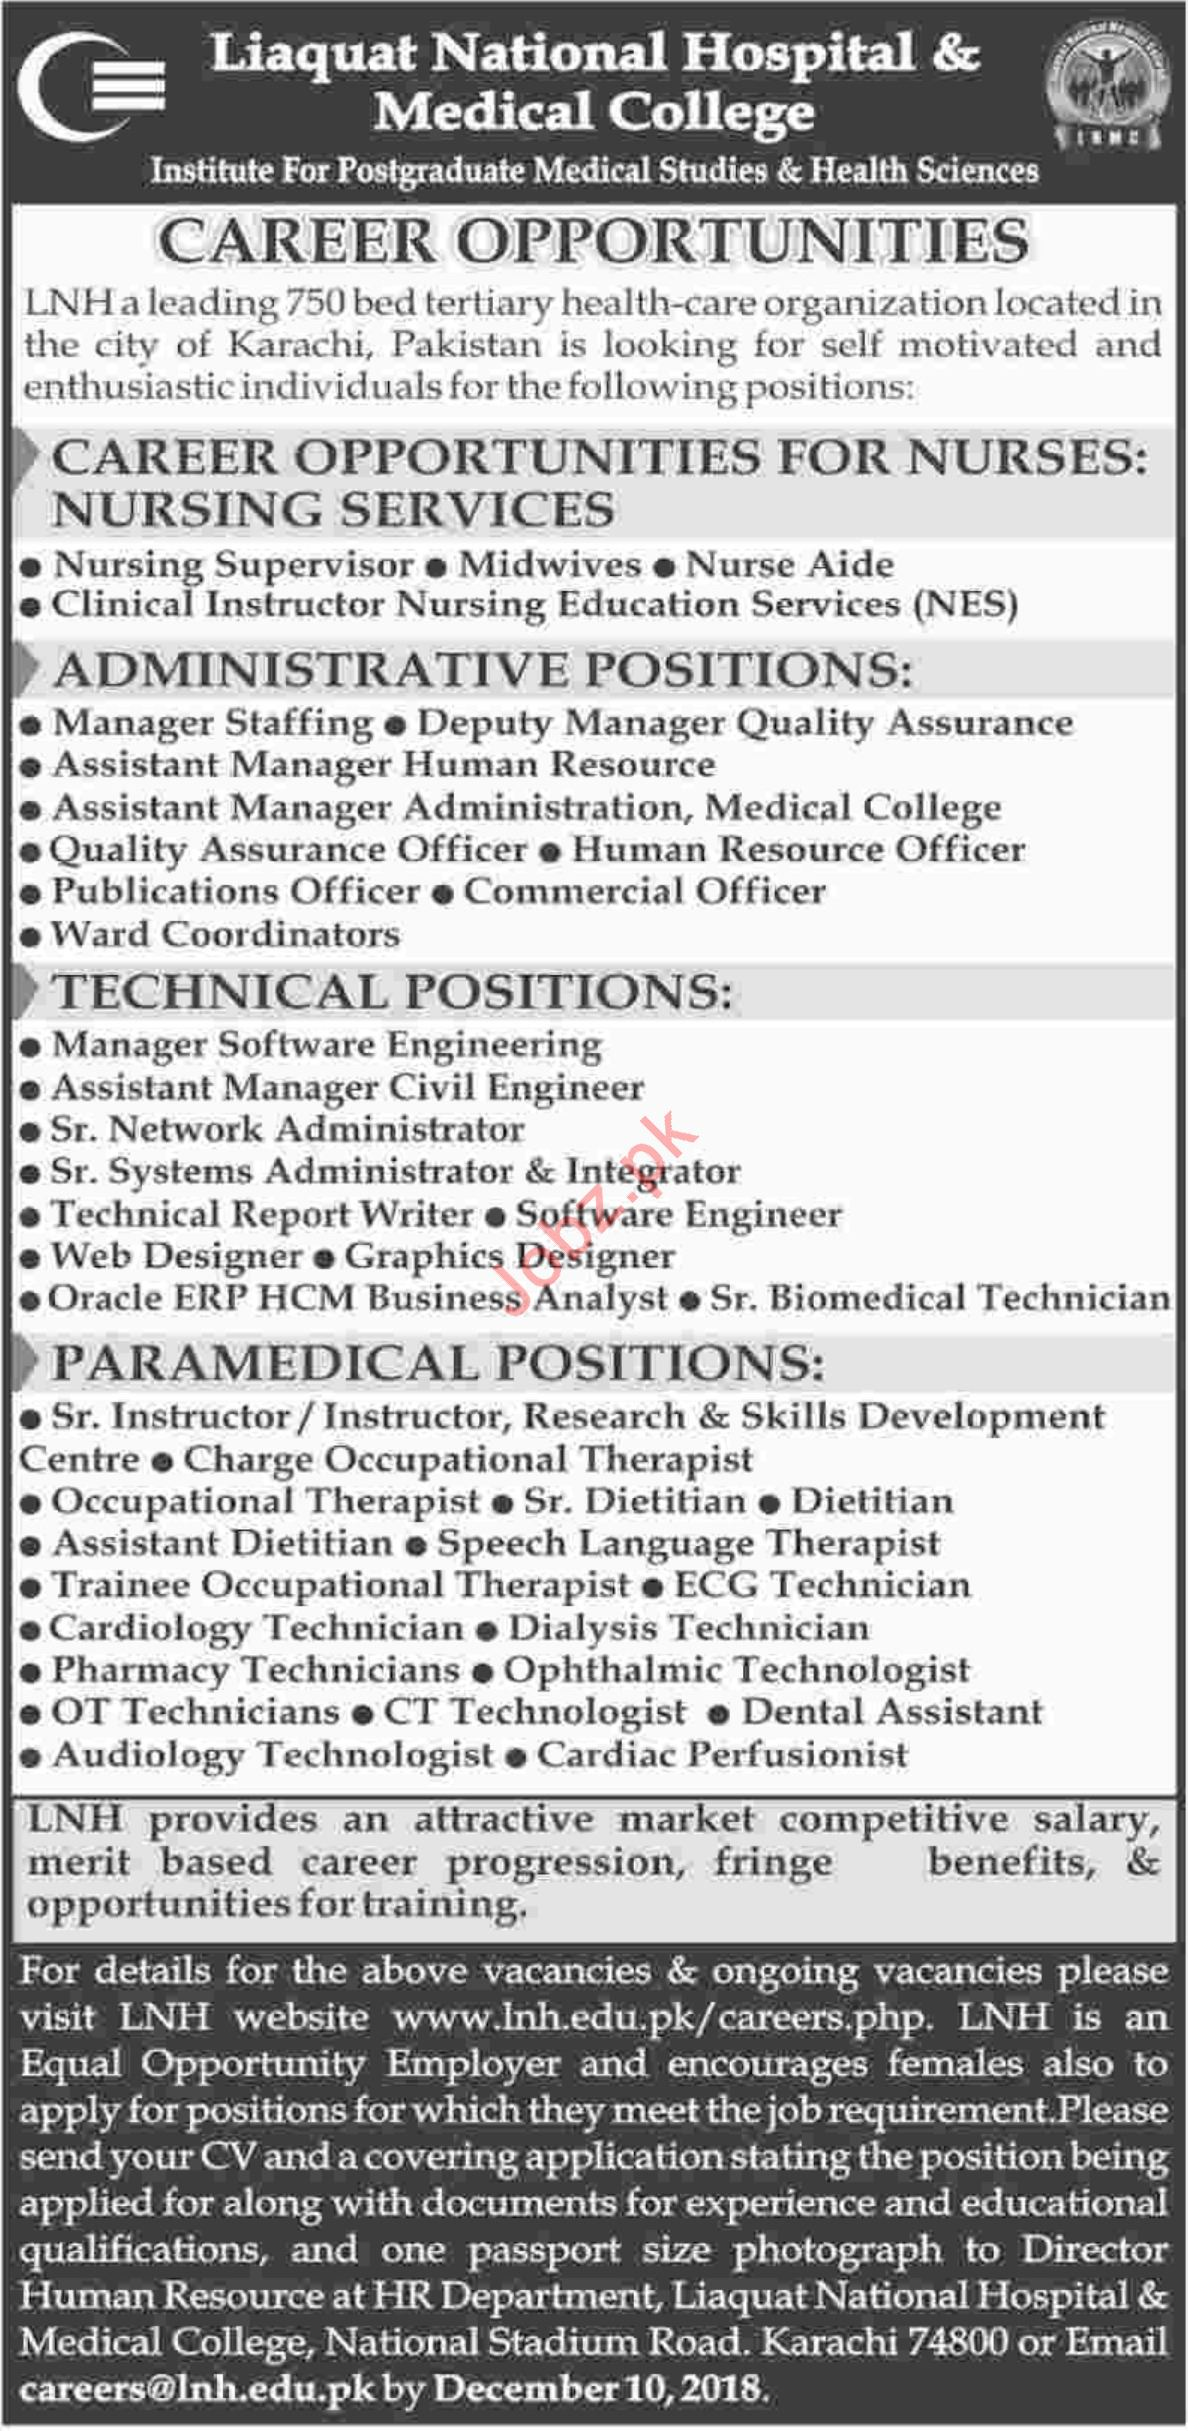 Liaquat National Hospital & Medical College Medical Jobs